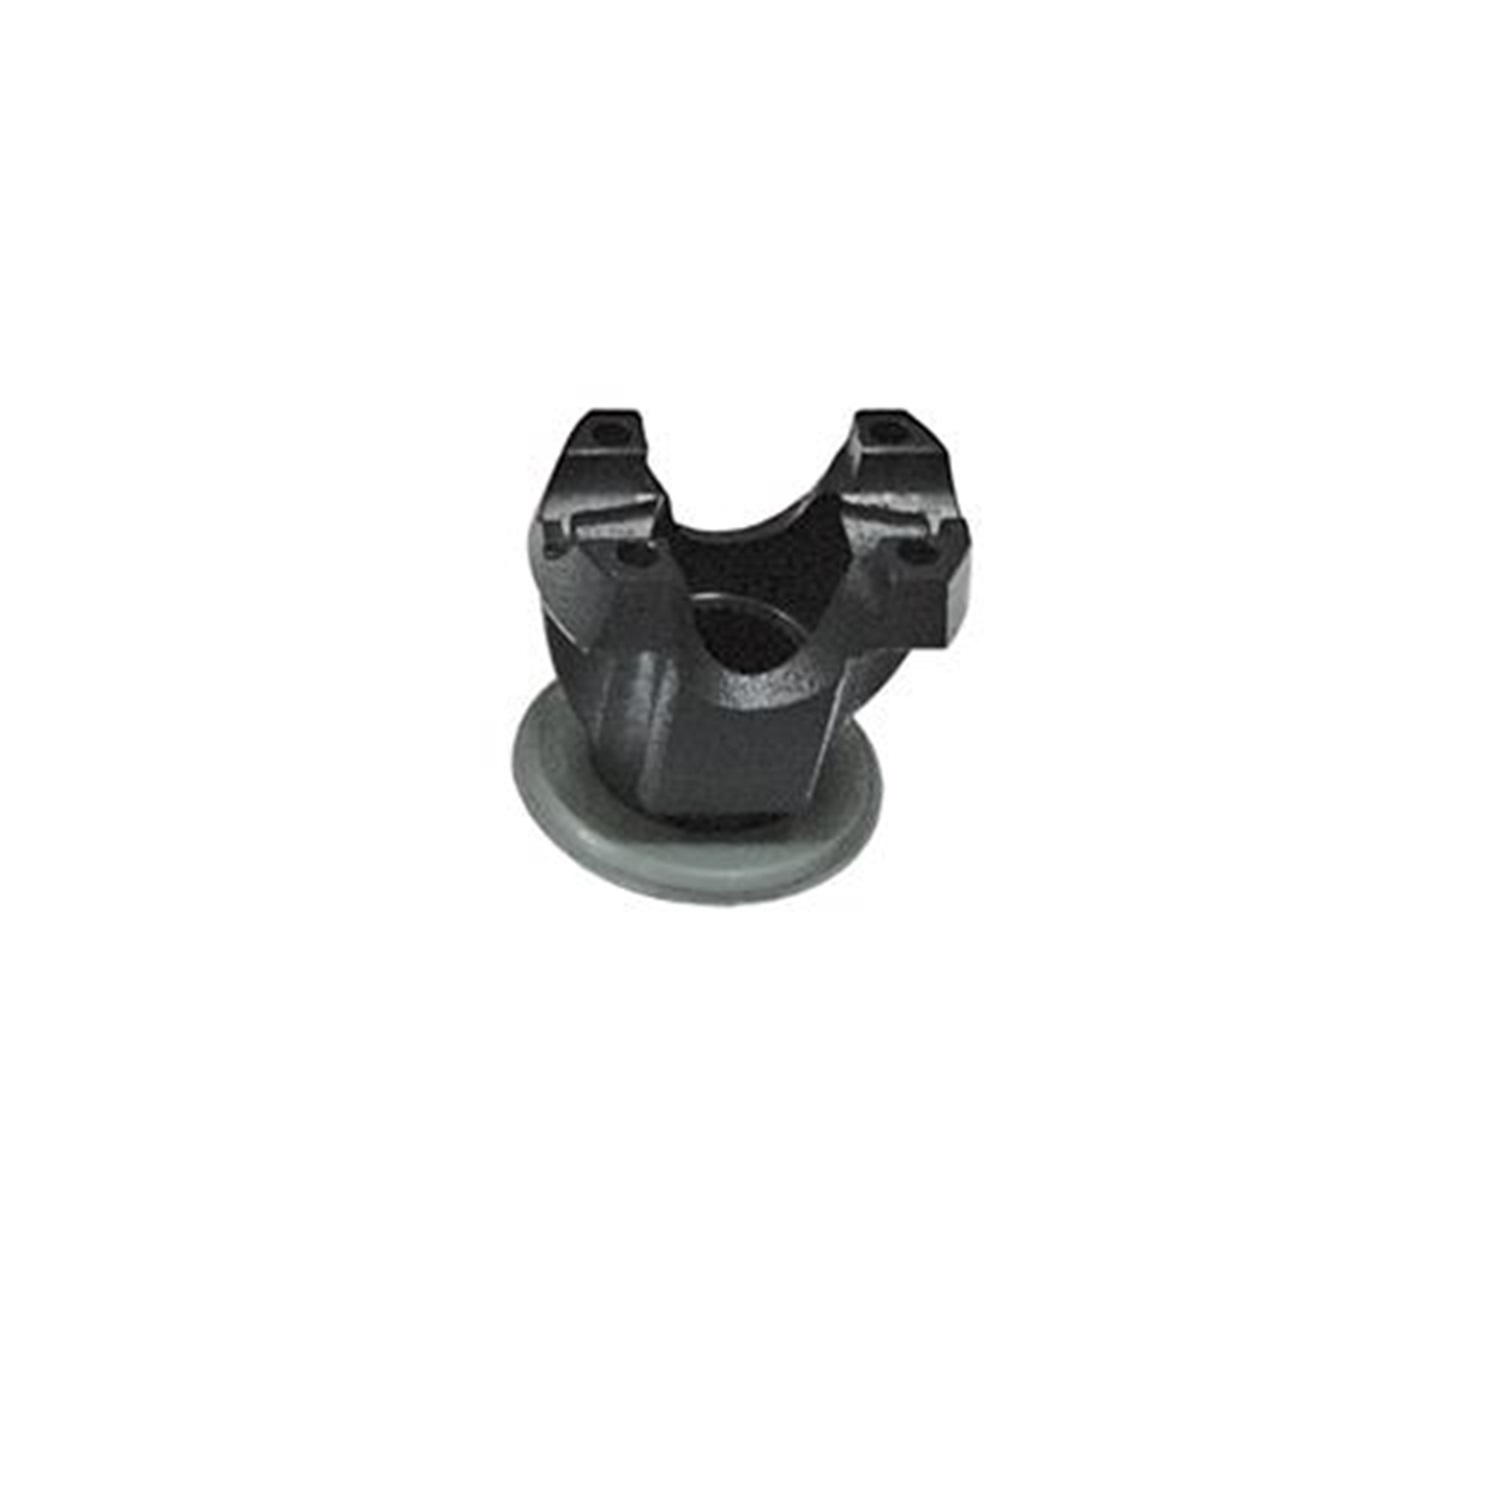 Rubicon Express RE1810 Transfer Case Yoke